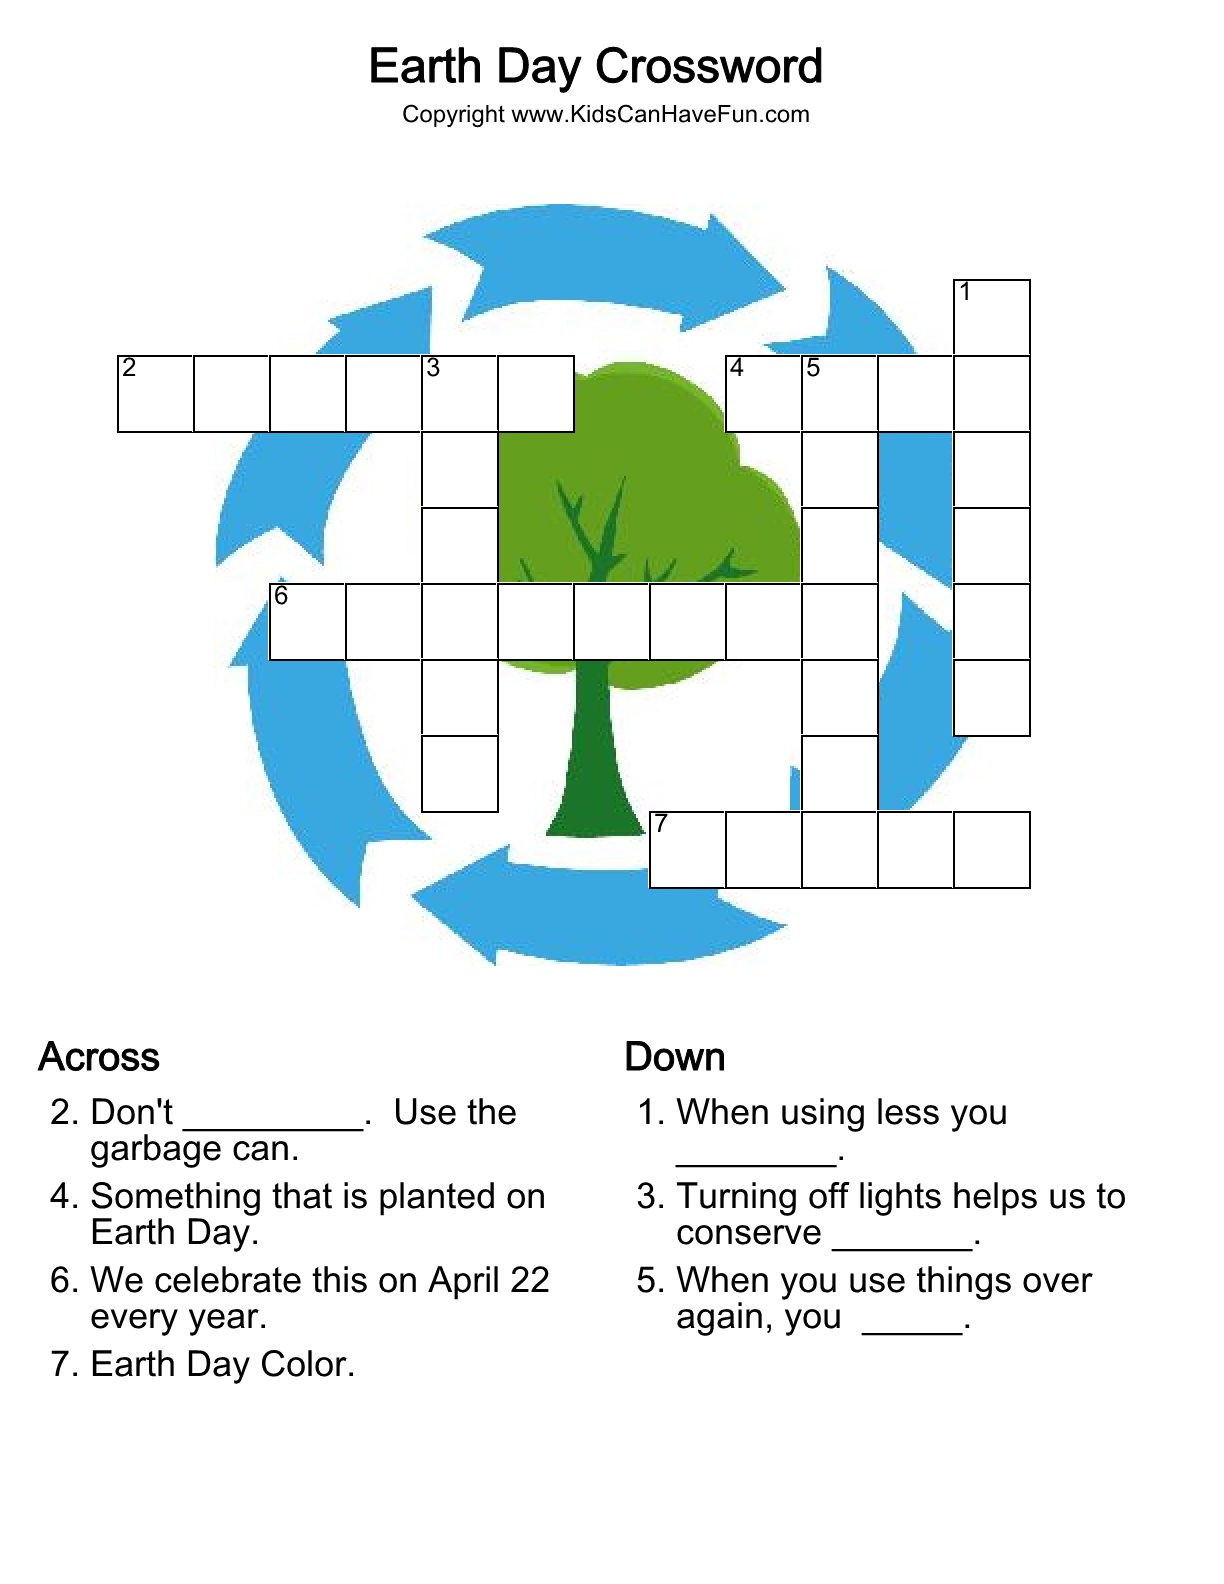 Earth day crossword puzzle httpkidscanhavefuncrosswords earth day crossword puzzle httpkidscanhavefuncrosswords ccuart Gallery